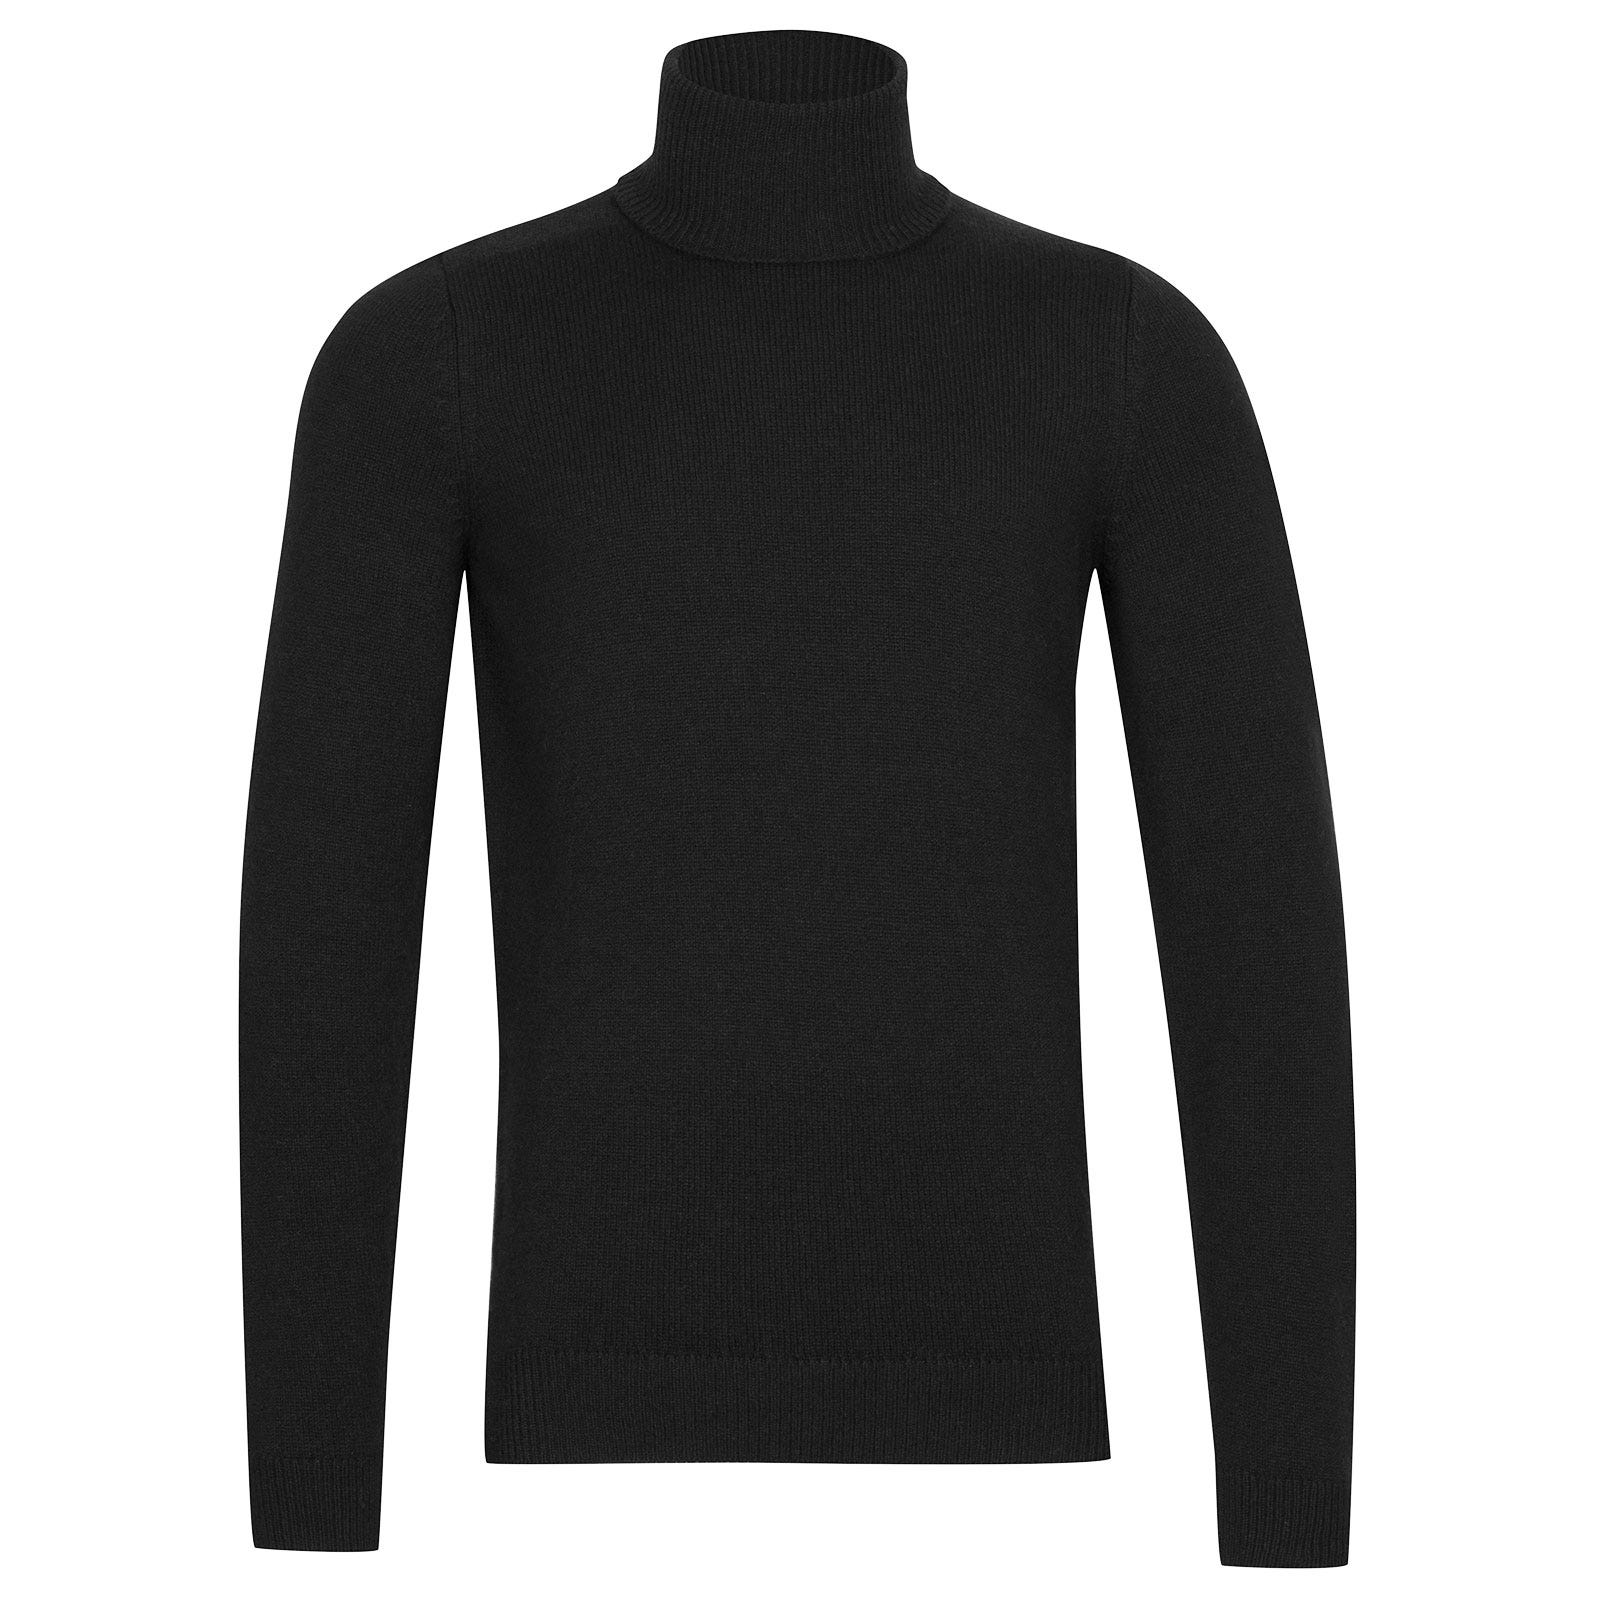 John Smedley Zachary Wool and Cashmere Pullover in Black-L